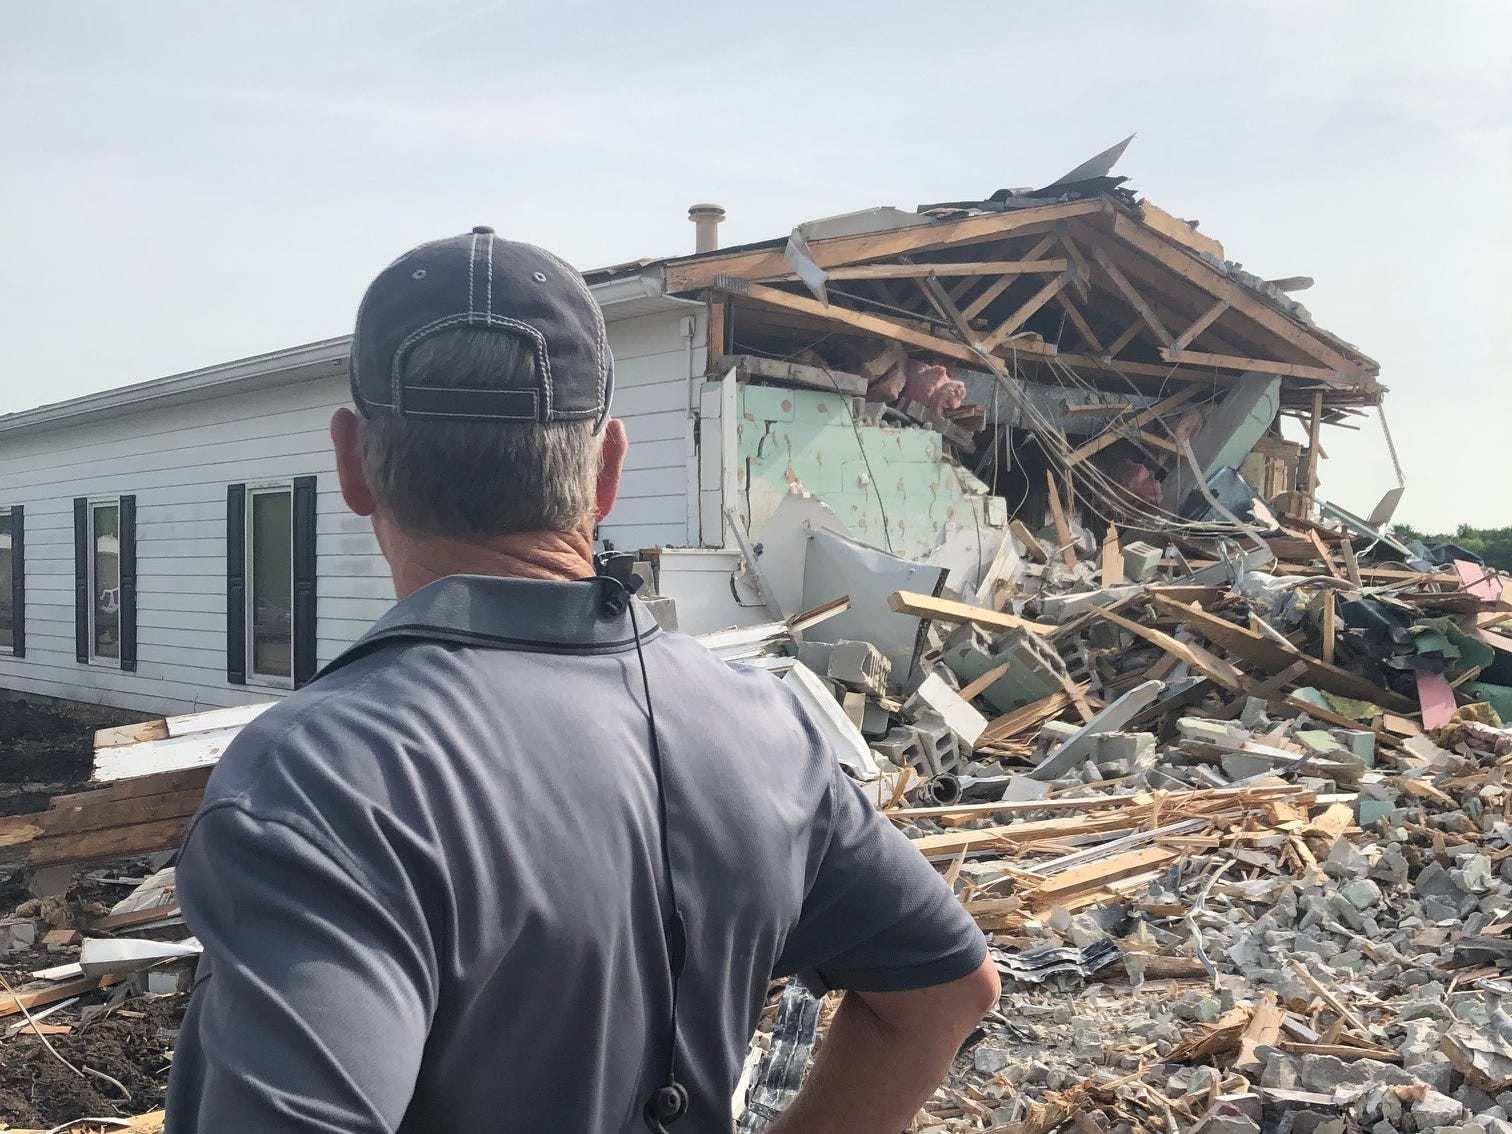 Murfreesboro Airport's terminal, built in 1952, was demolished Monday, April 29, 2019. The facility will be replaced with a modern building to be completed in 2020.